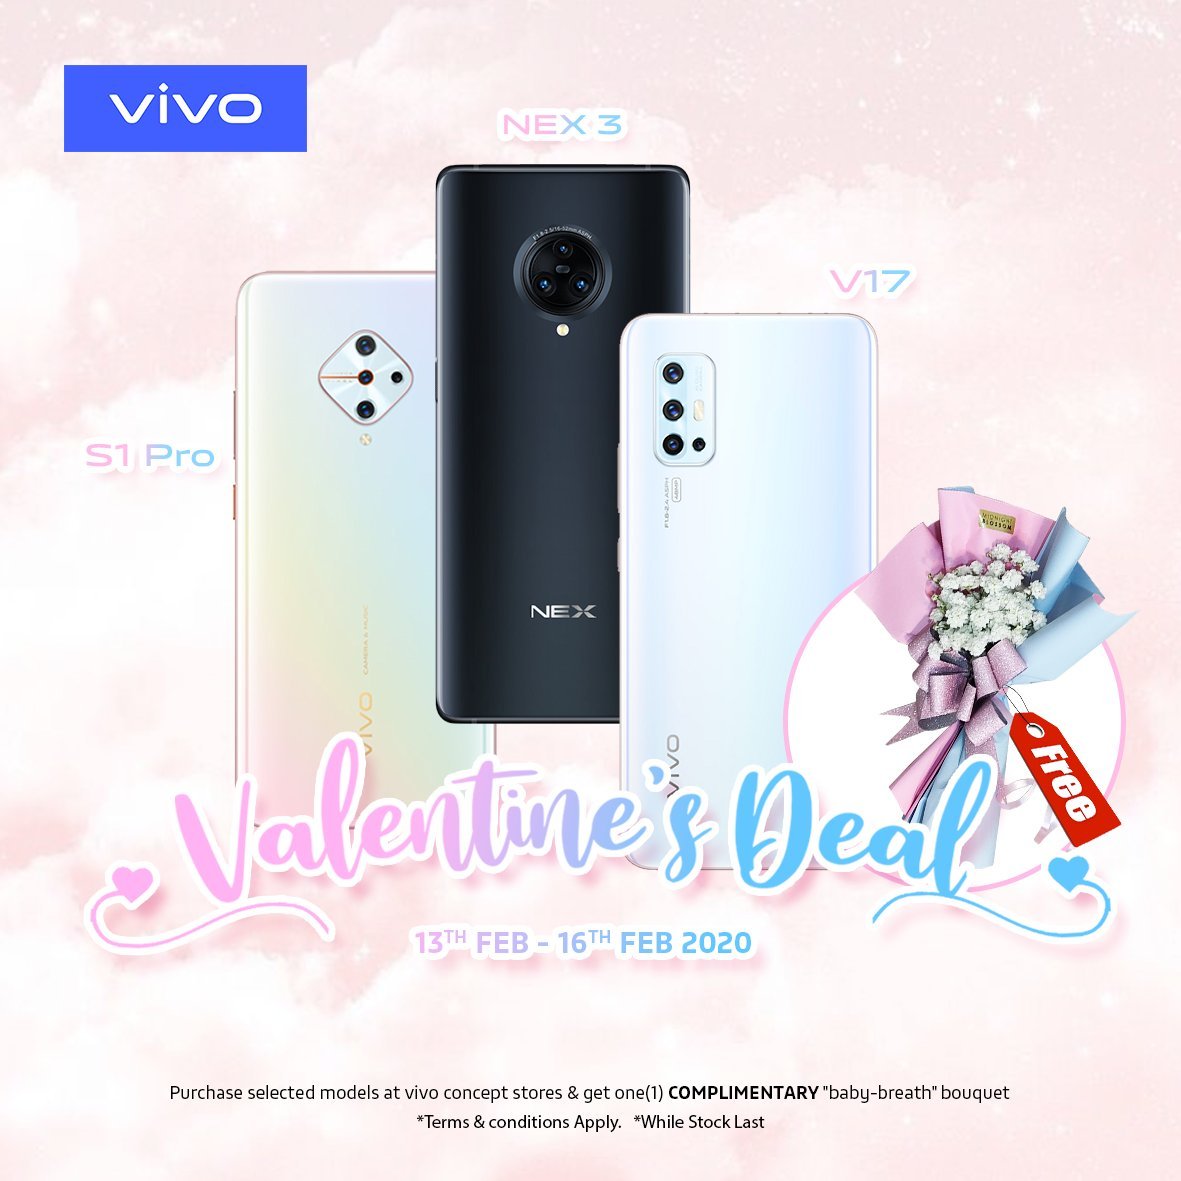 Win Vivo S1 Pro This Valentine's Day